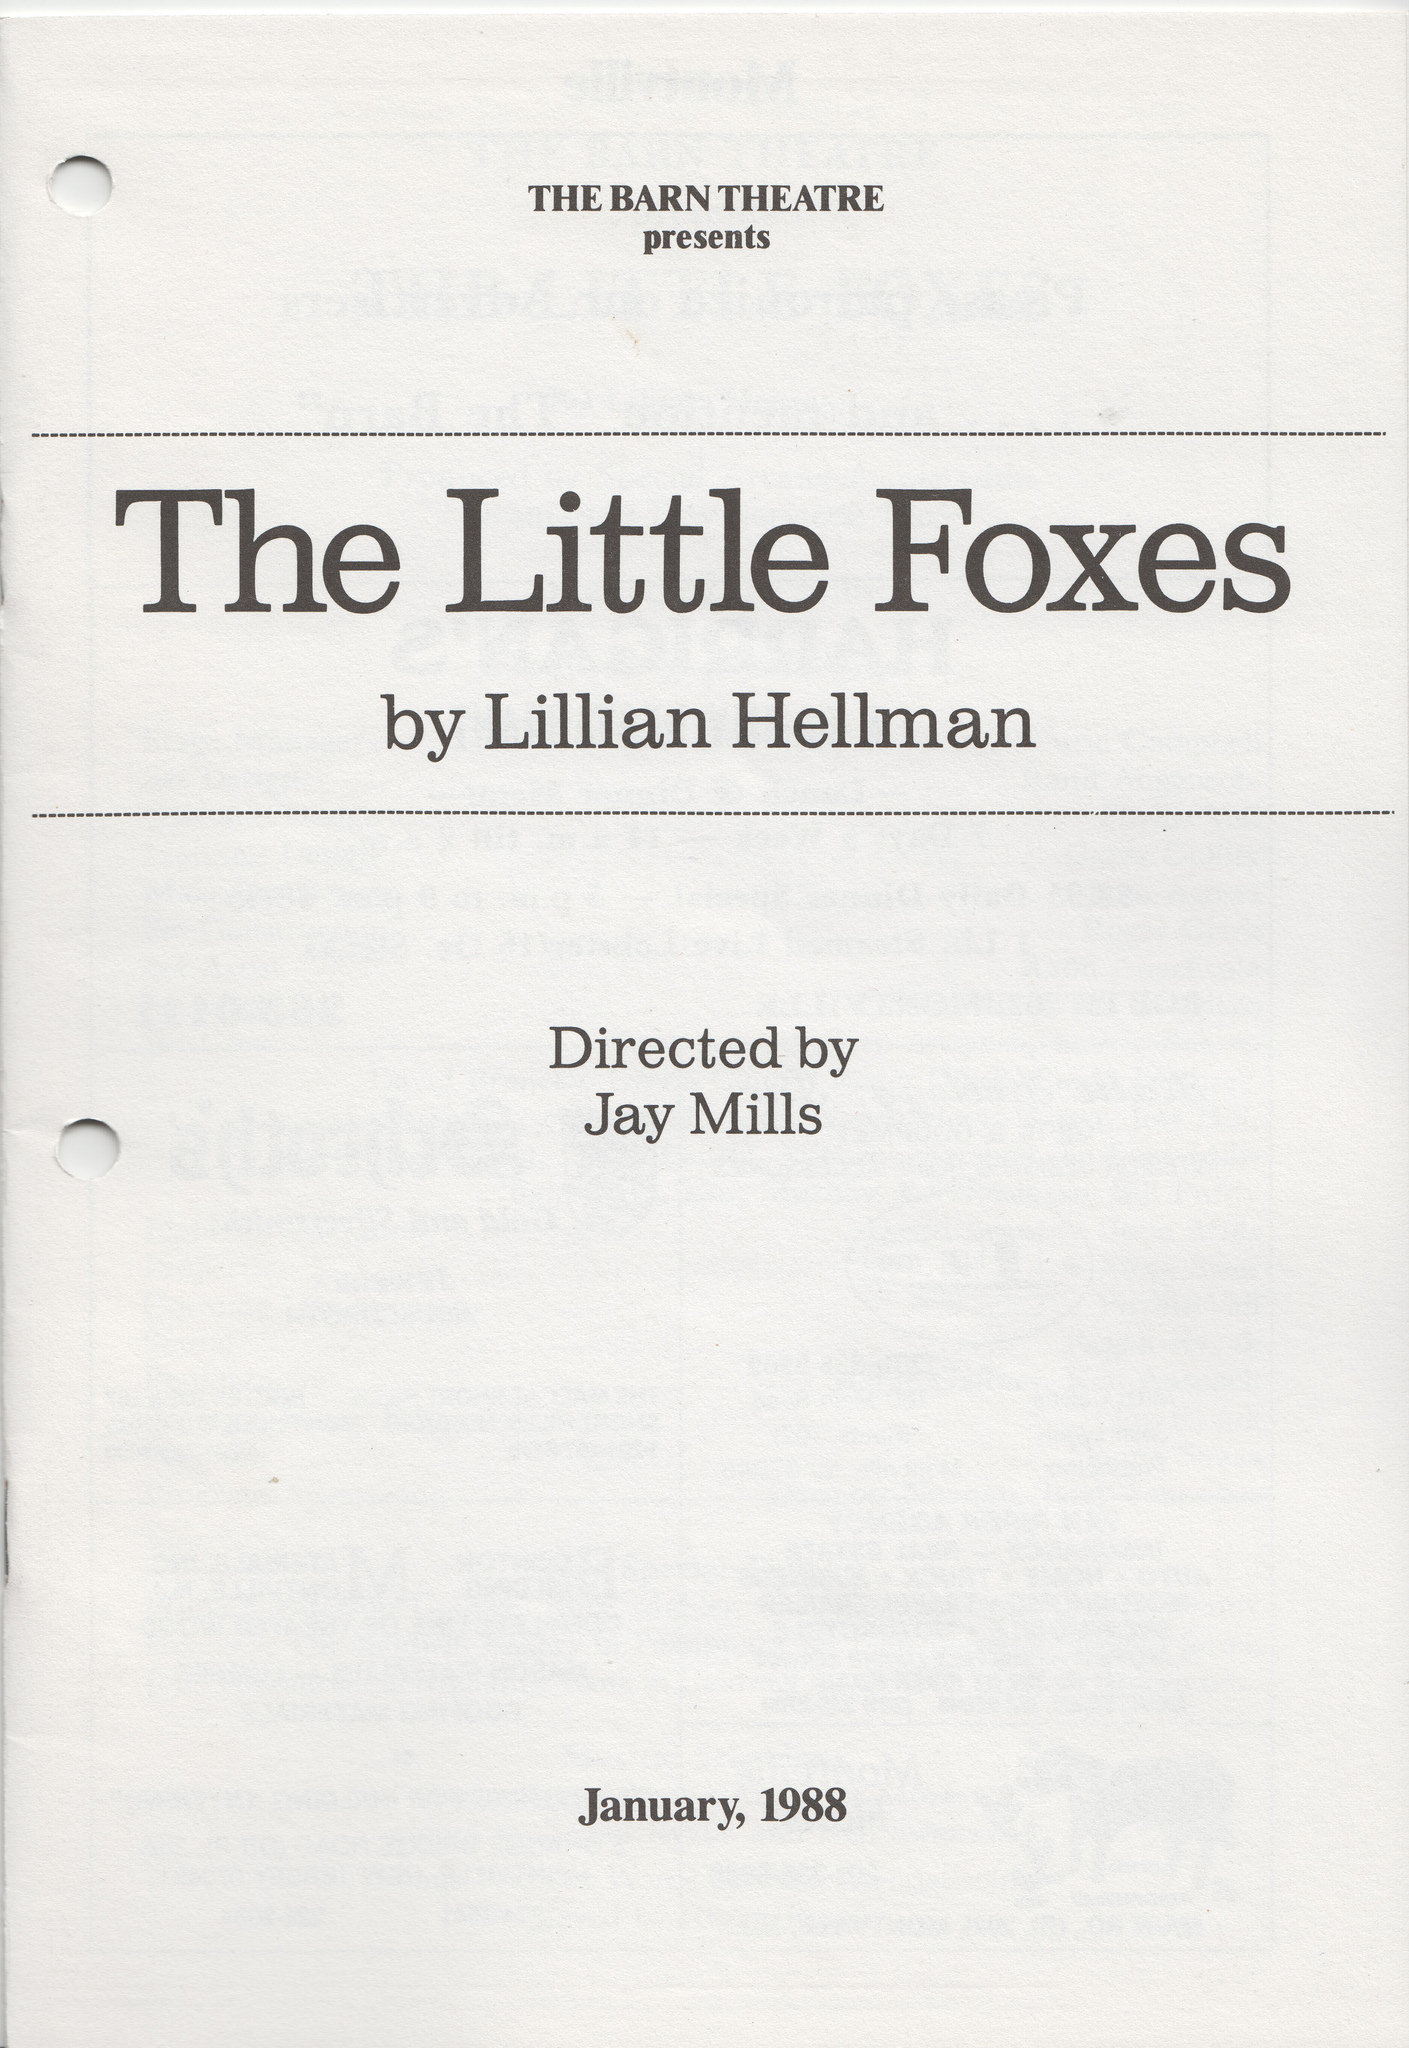 Program Cover for The Little Foxes